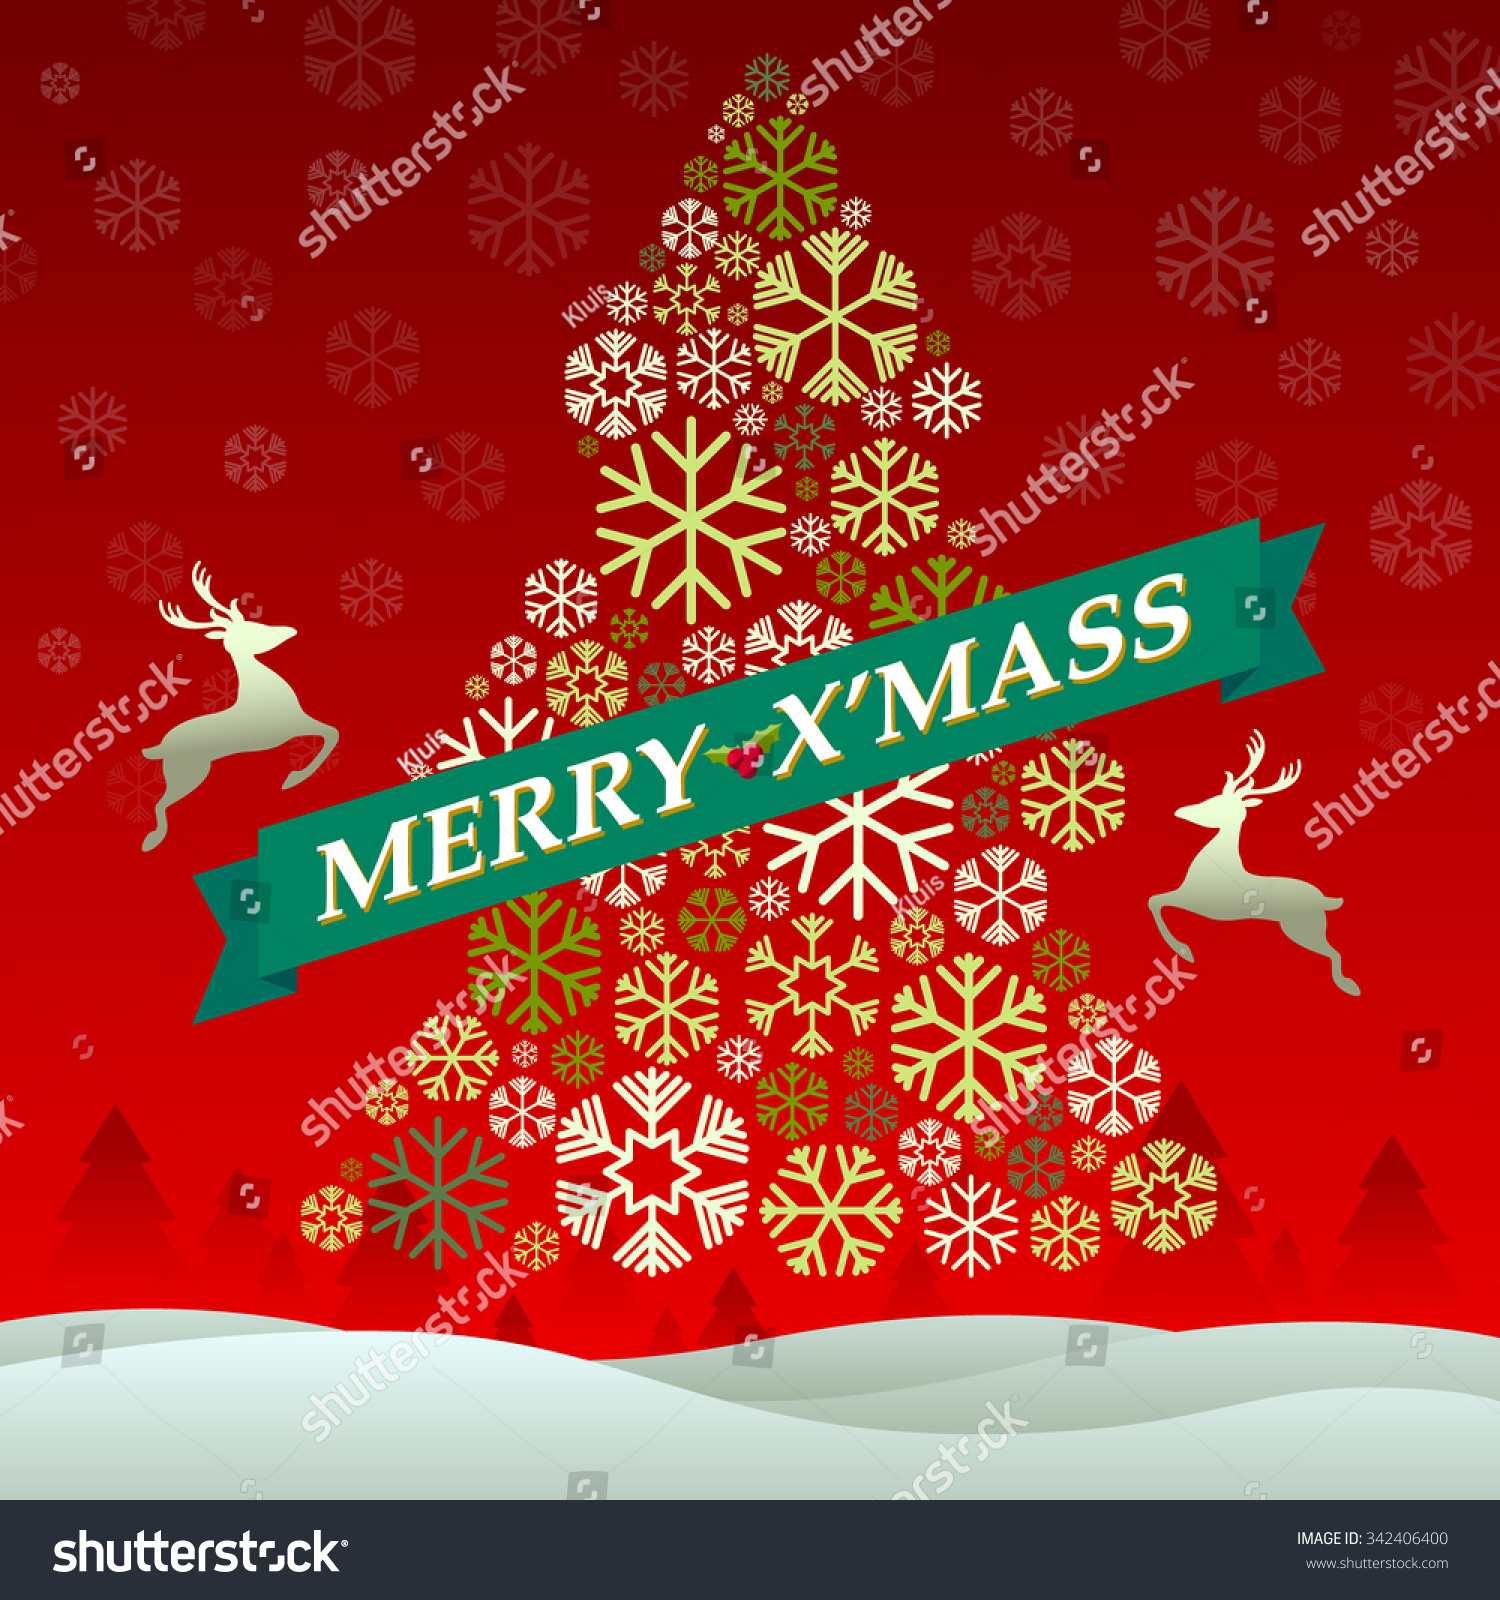 Merry X Mass Vector Illustration Stock Vector (Royalty Free ...